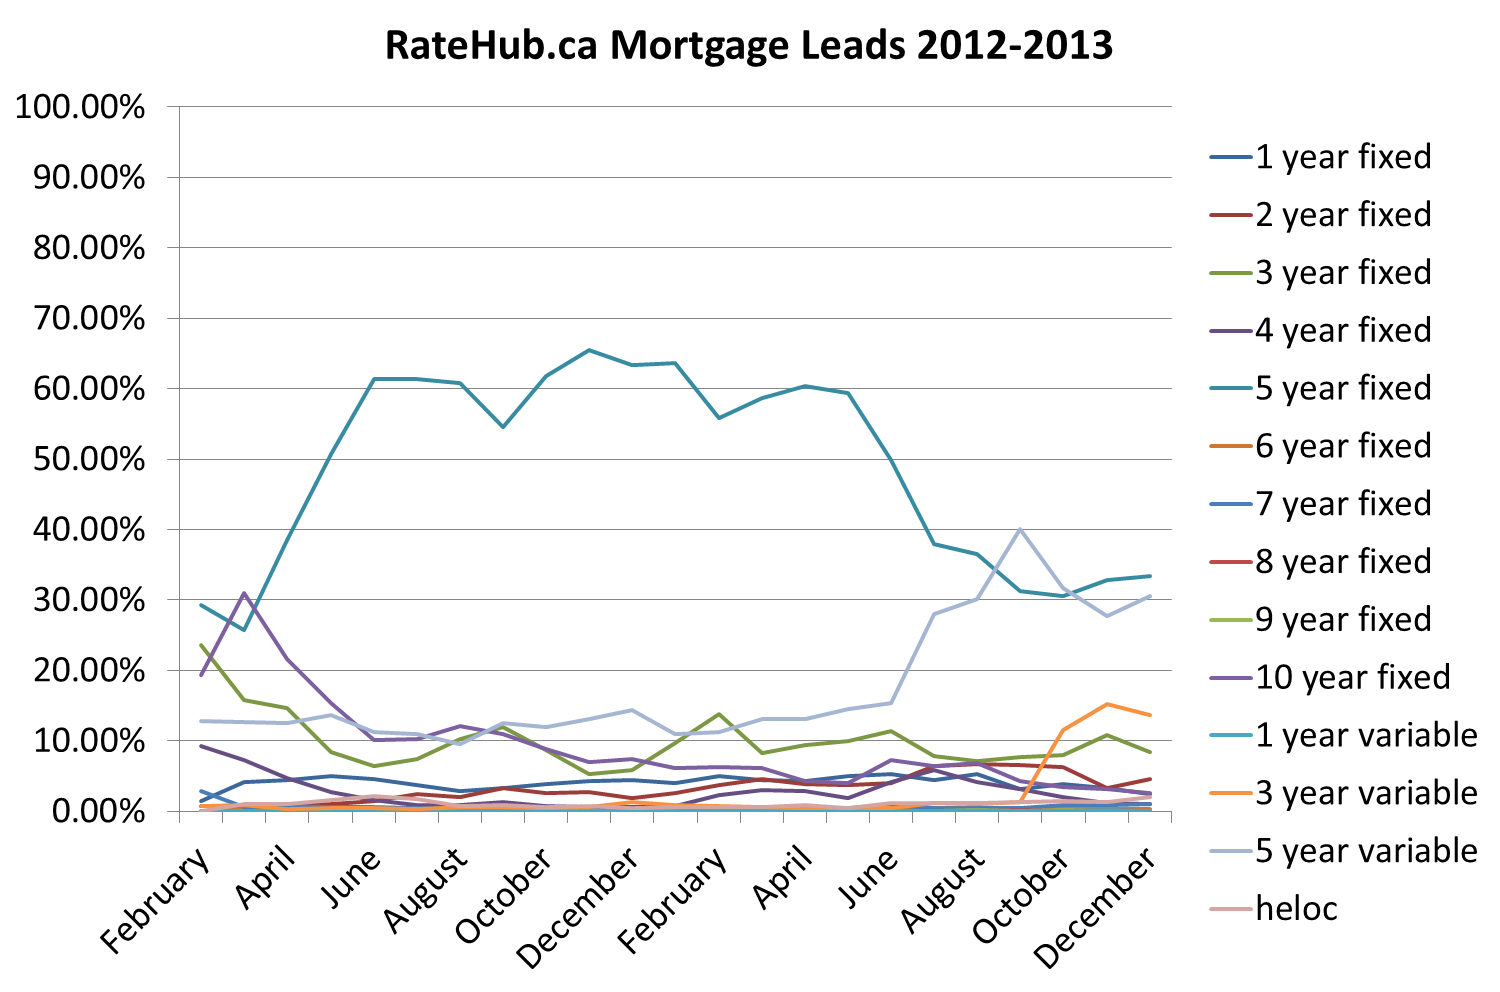 3. RateHub Mortgage Leads 2012-2013